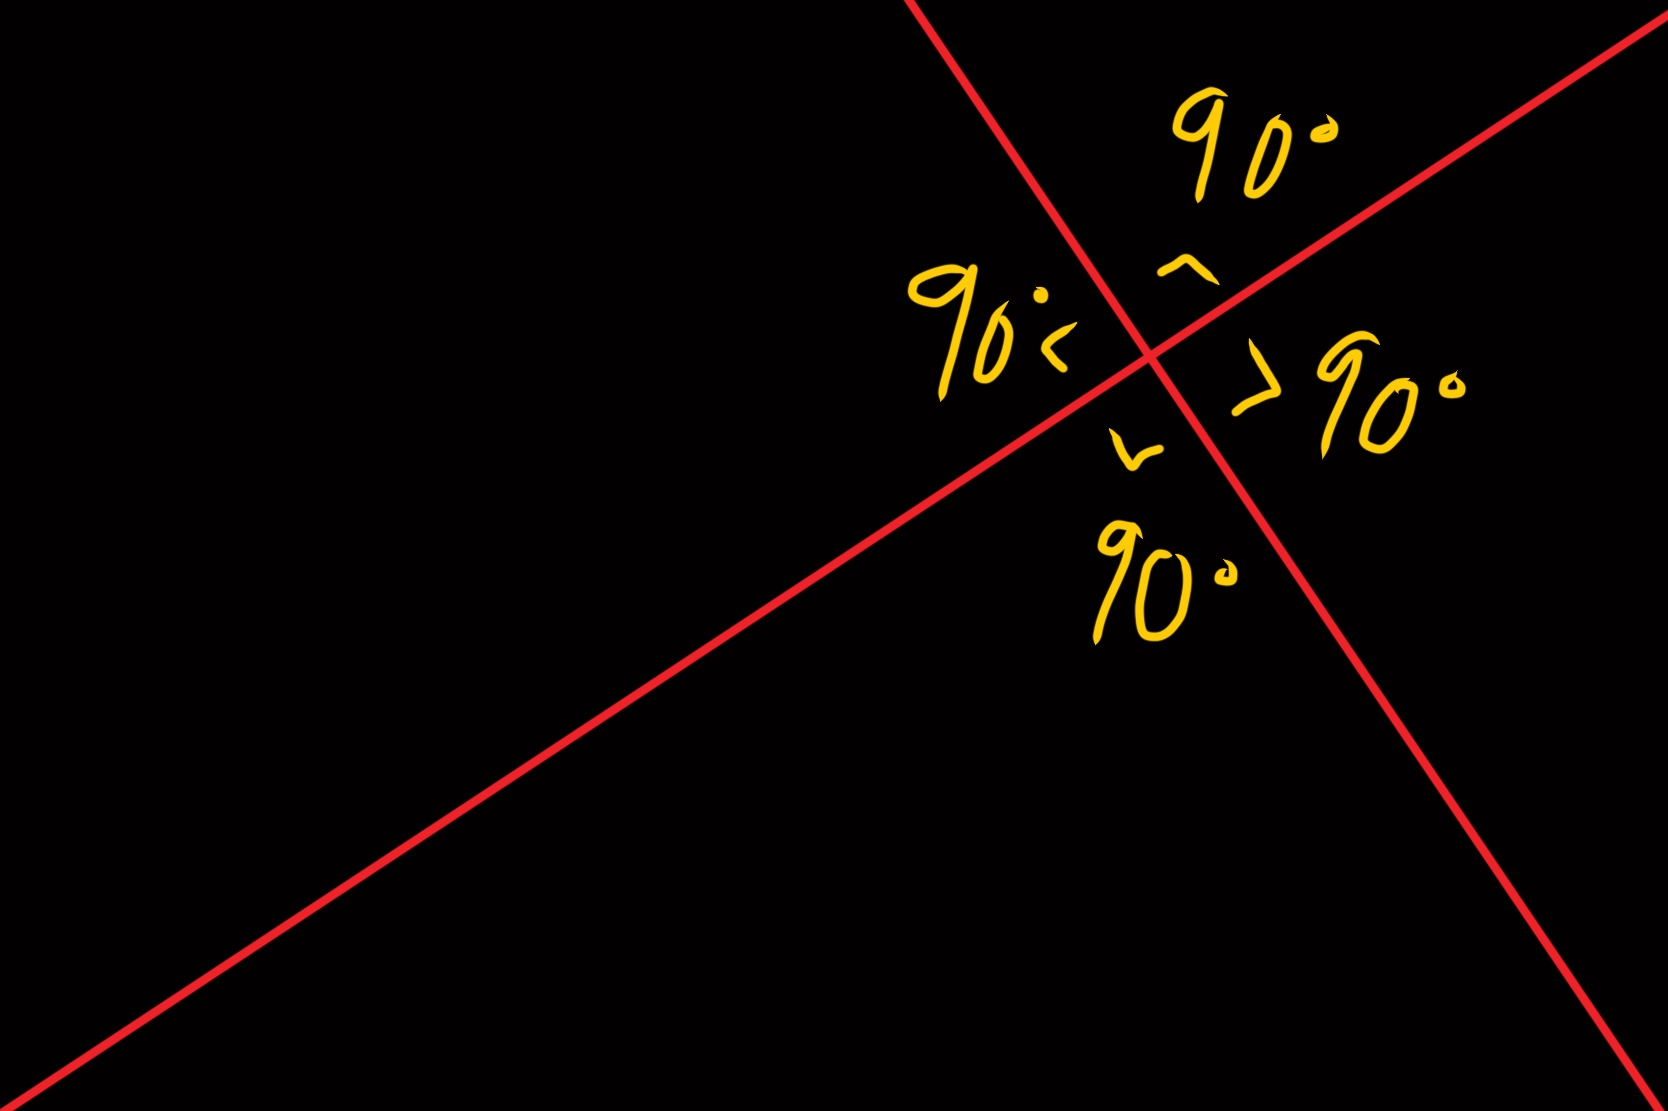 Note how the lines are perpendicular at 90 degree angles all around